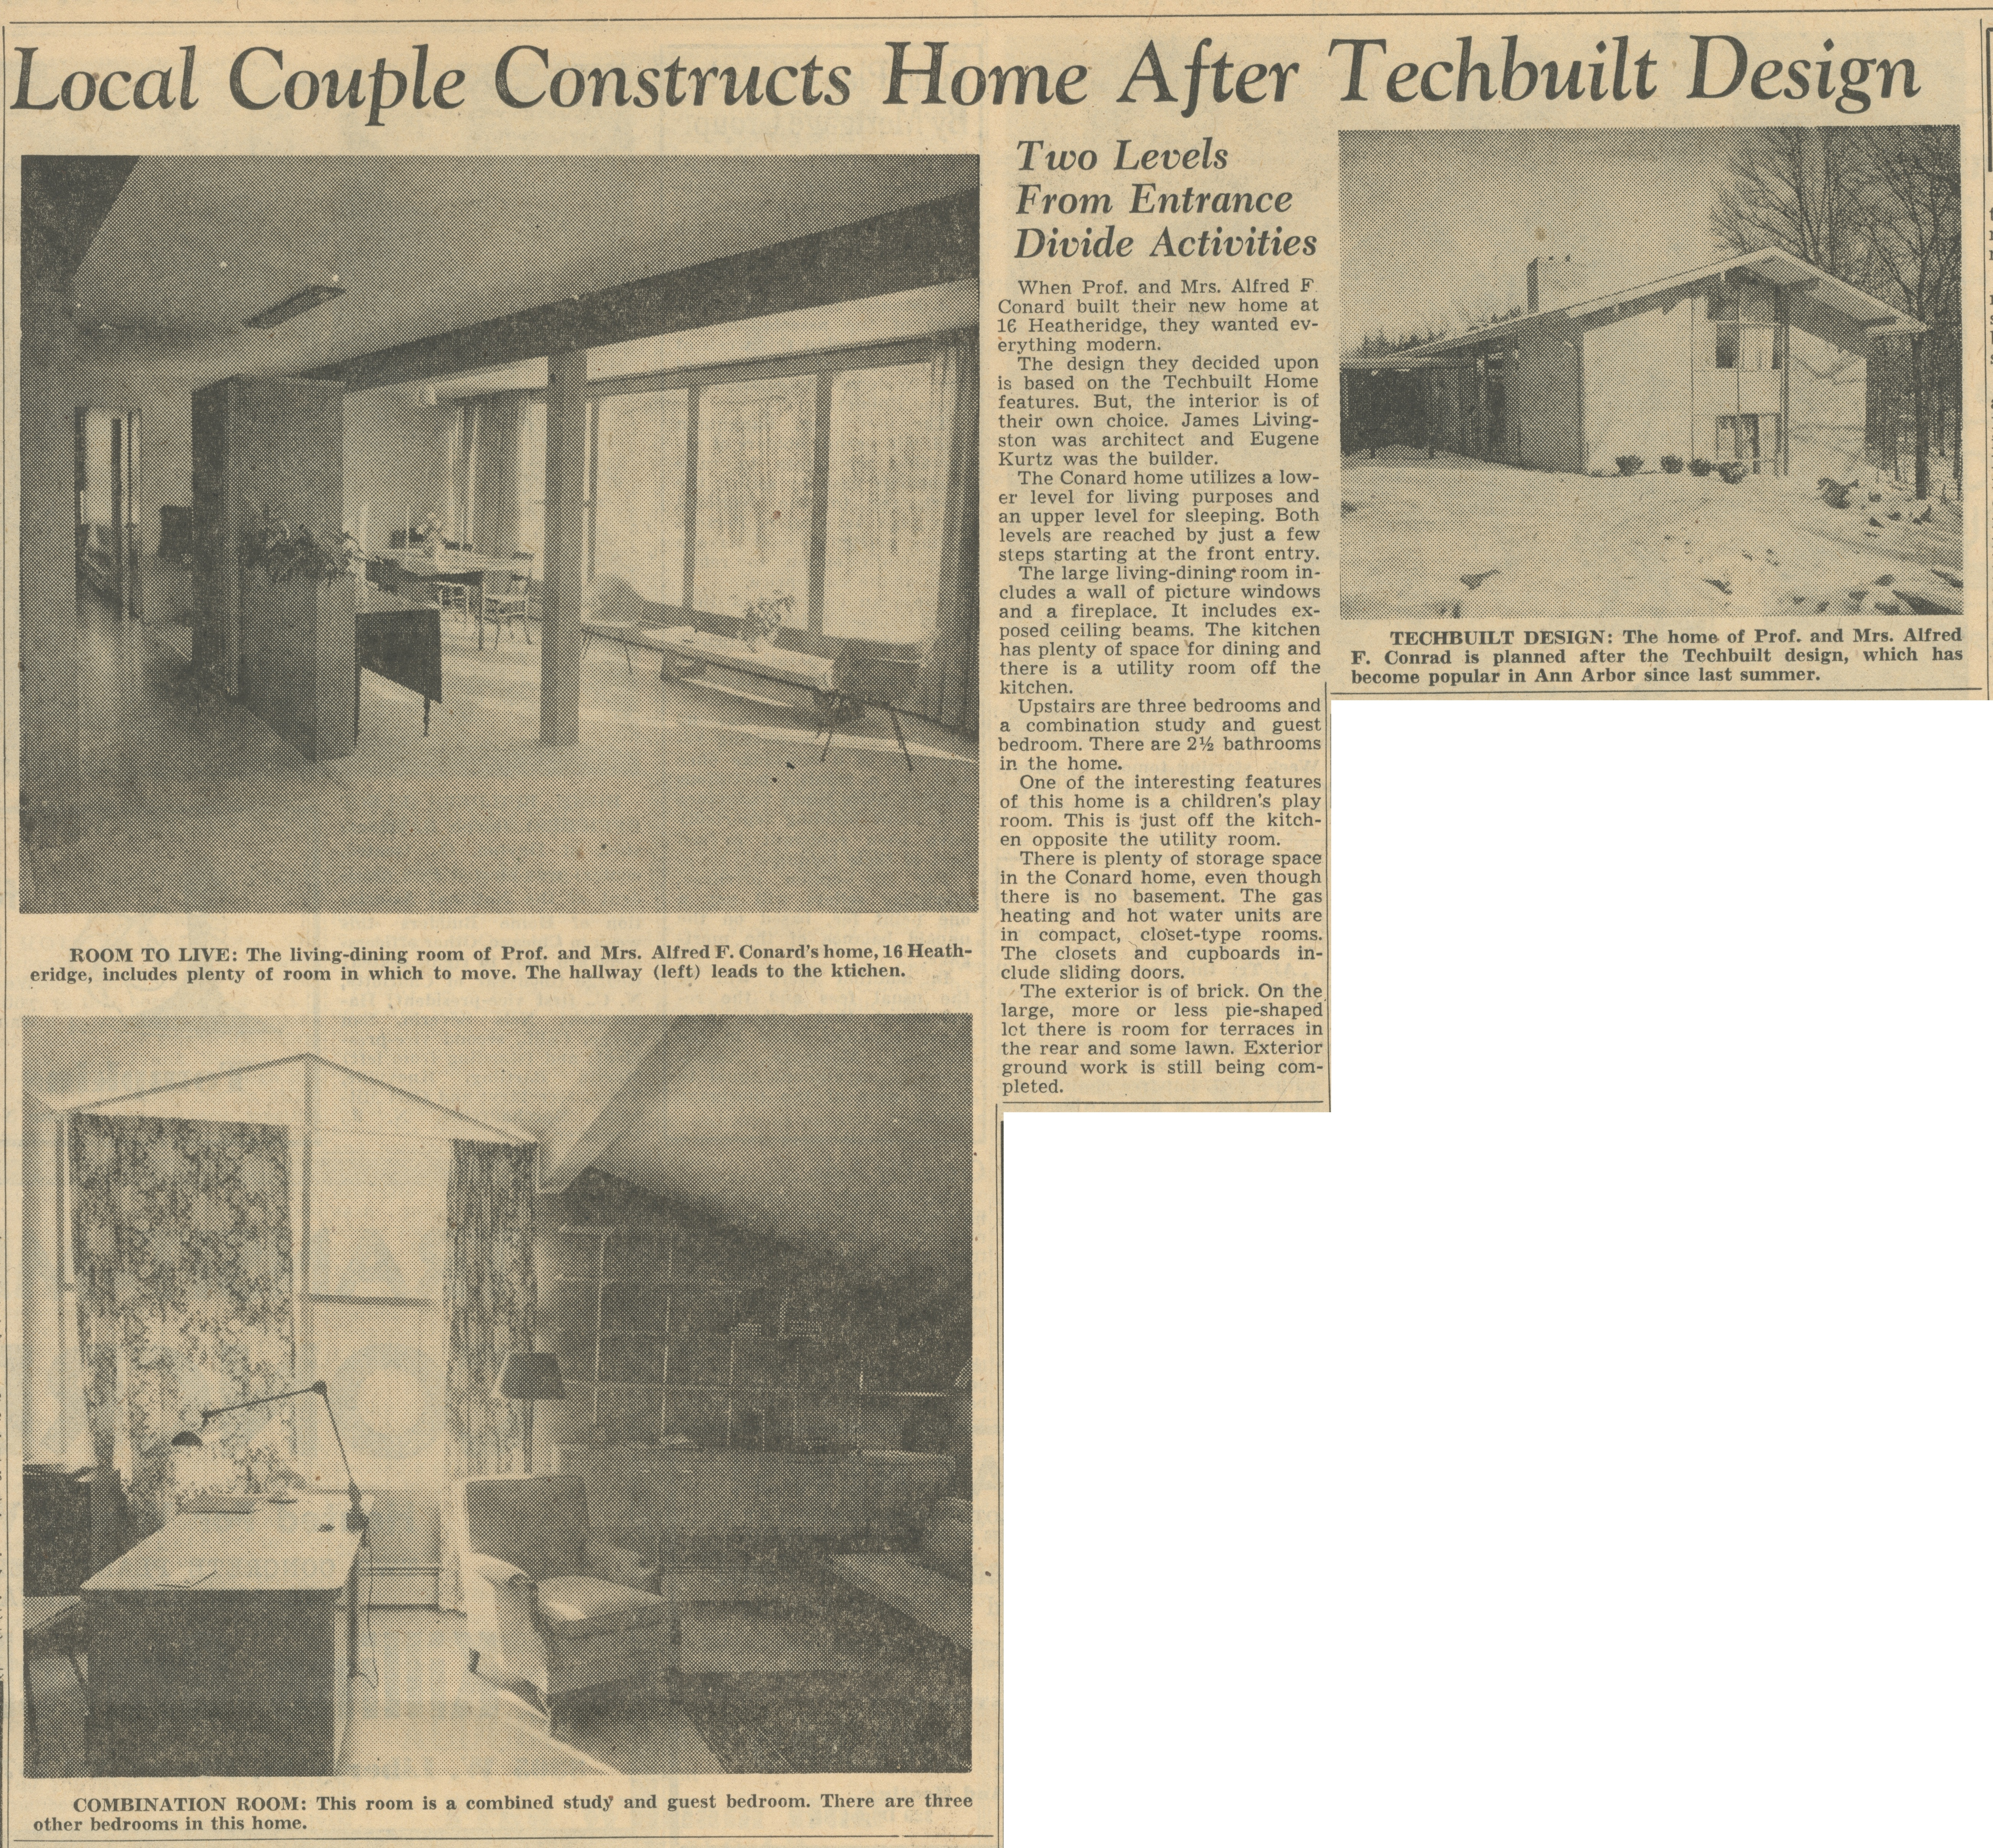 Local Couple Constructs Home After Techbuilt Design image